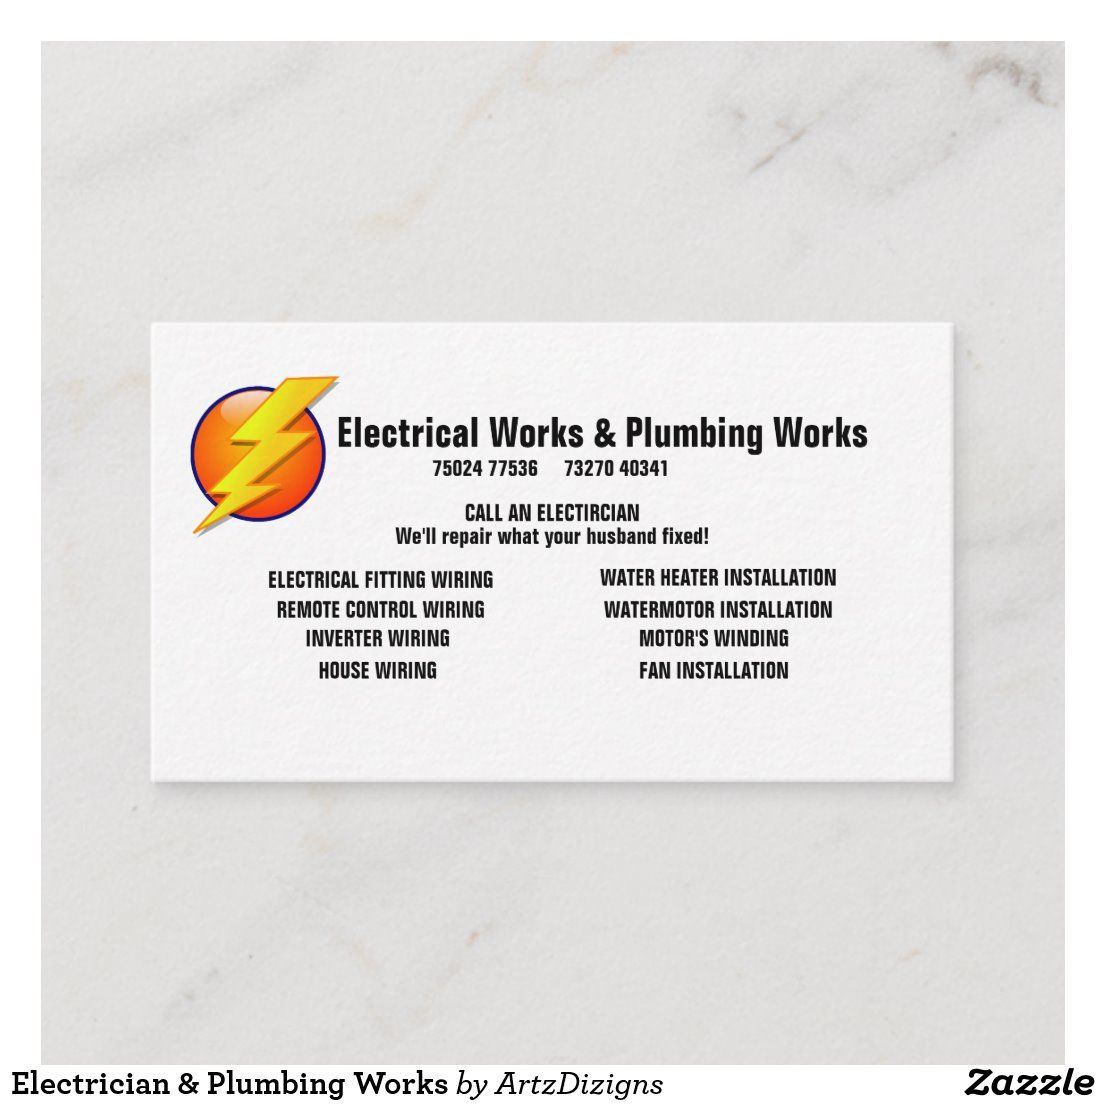 Electrician Plumbing Works Business Card Zazzle Com In 2020 Business Pens Electrician Business Holiday Cards